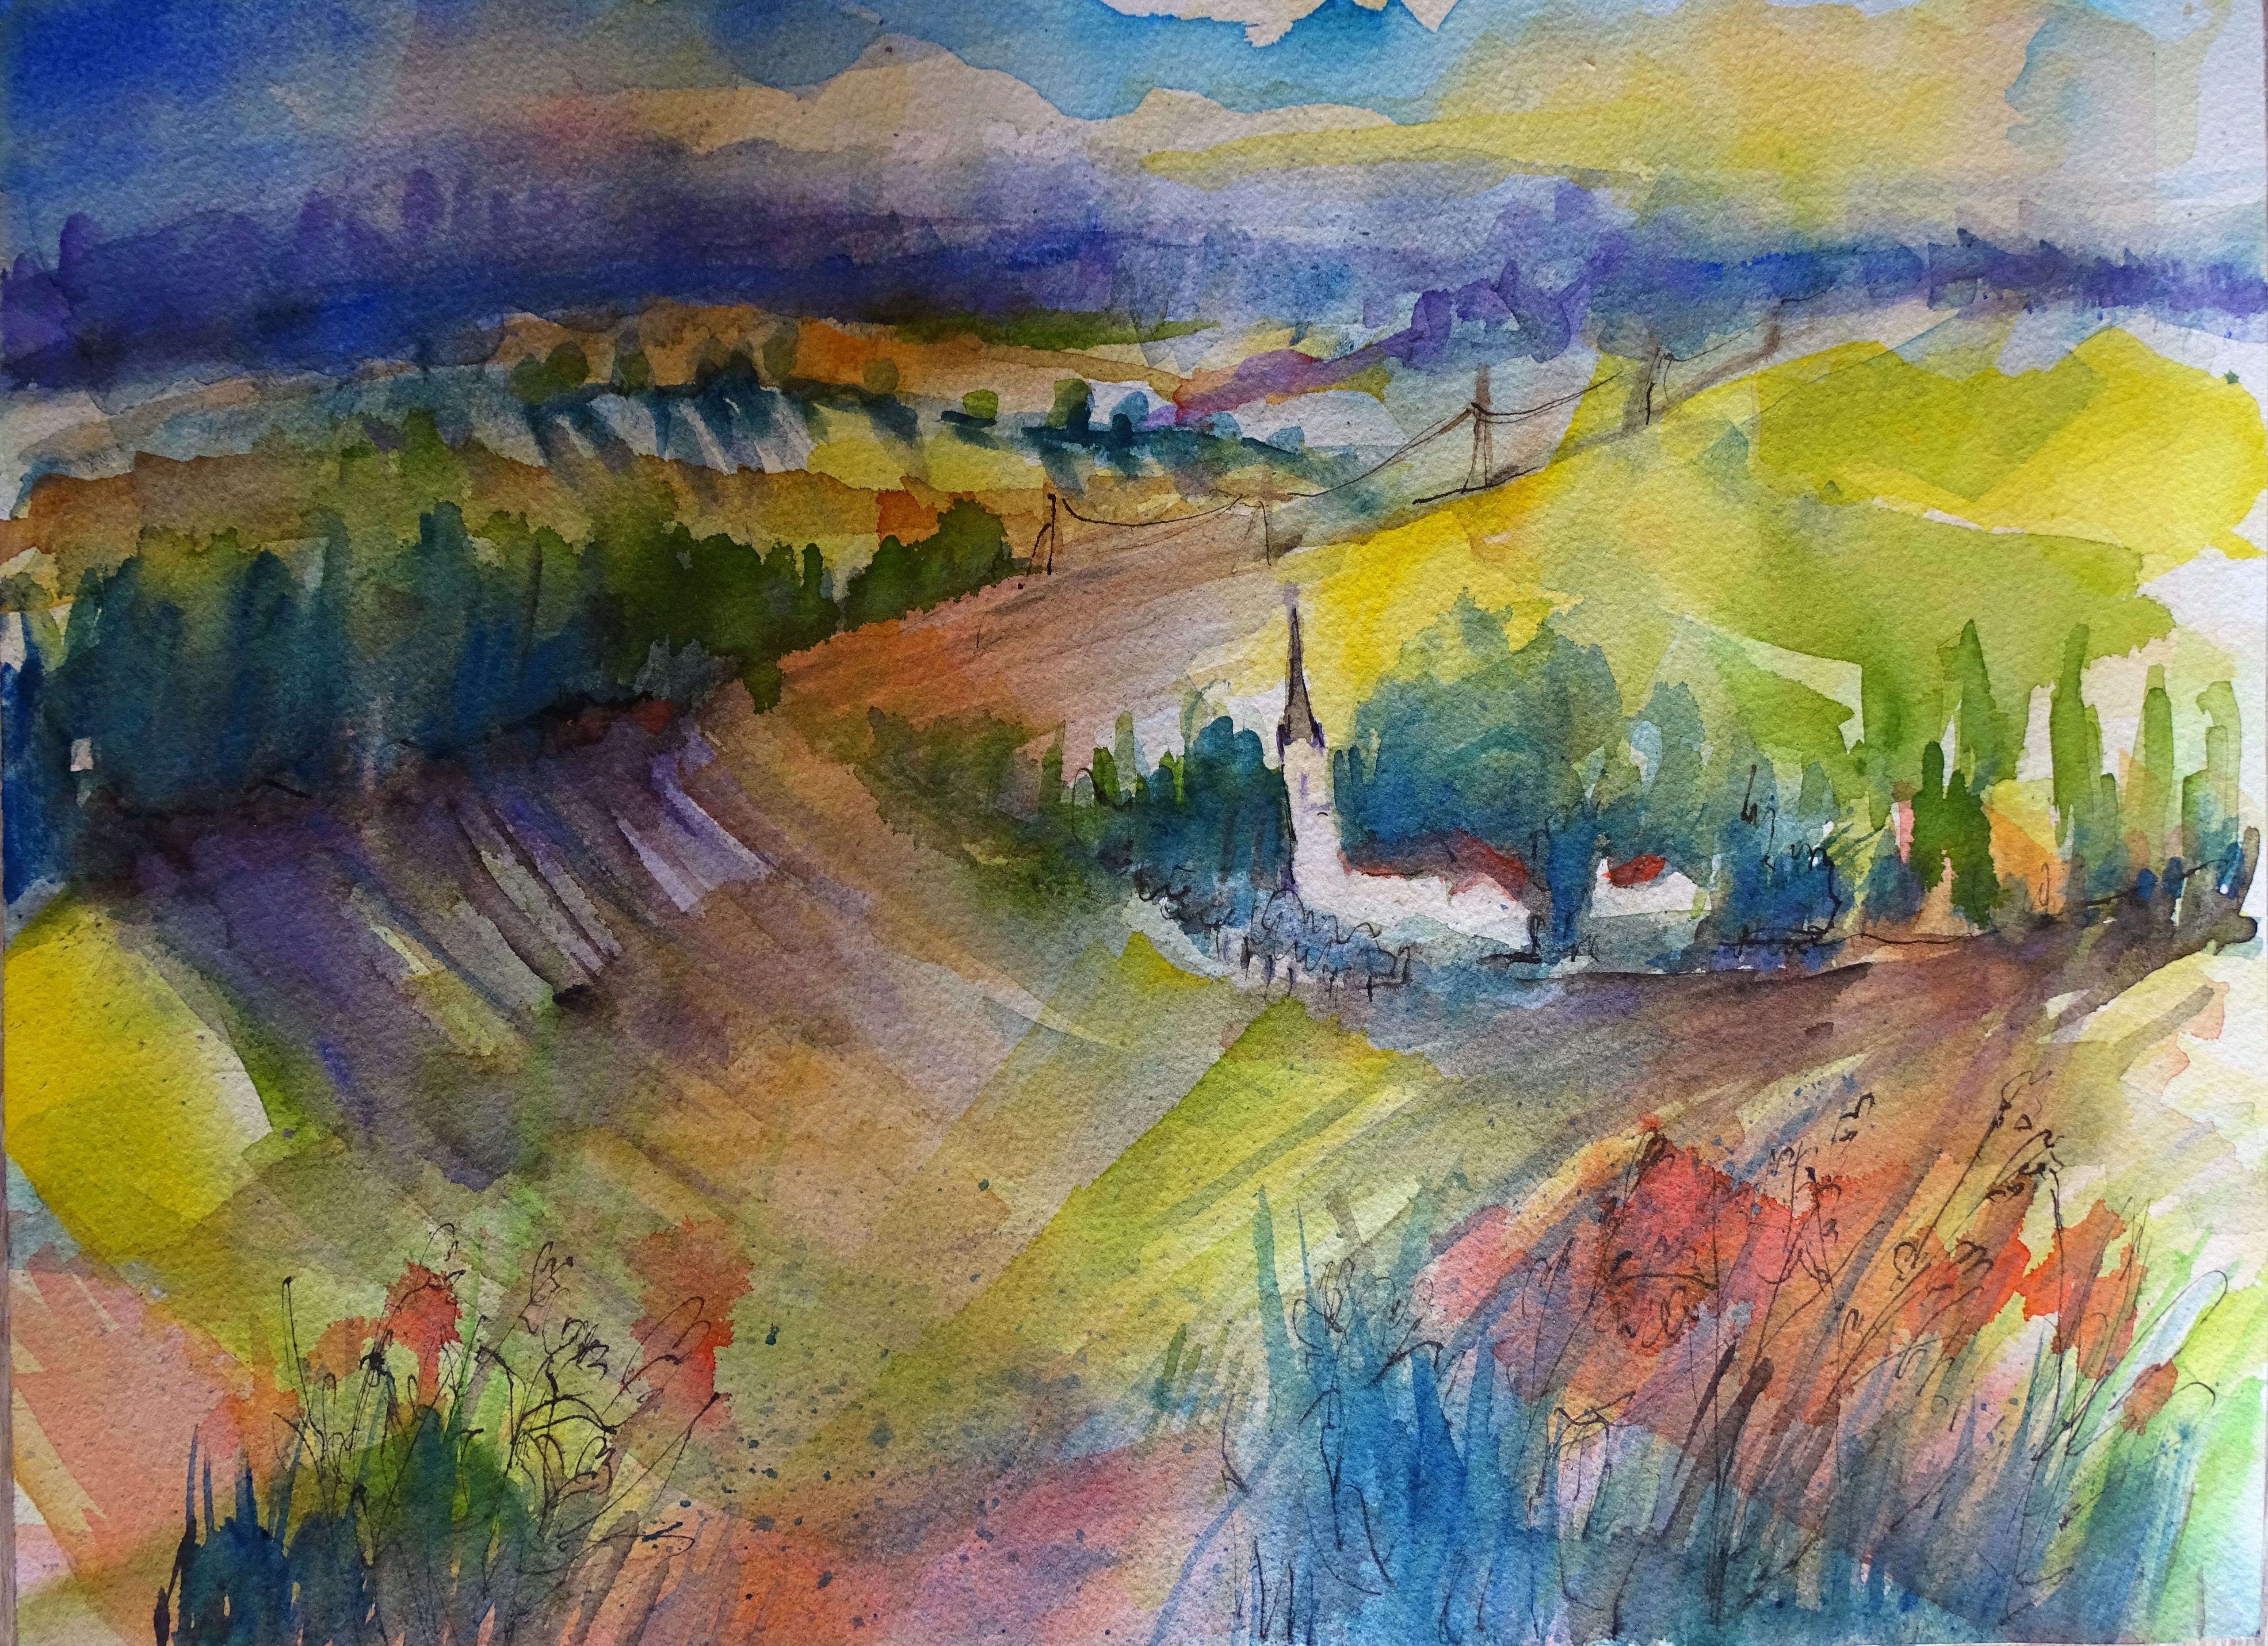 Rottal-Inn-Aquarell-Nadia-Baumgart-watercolour